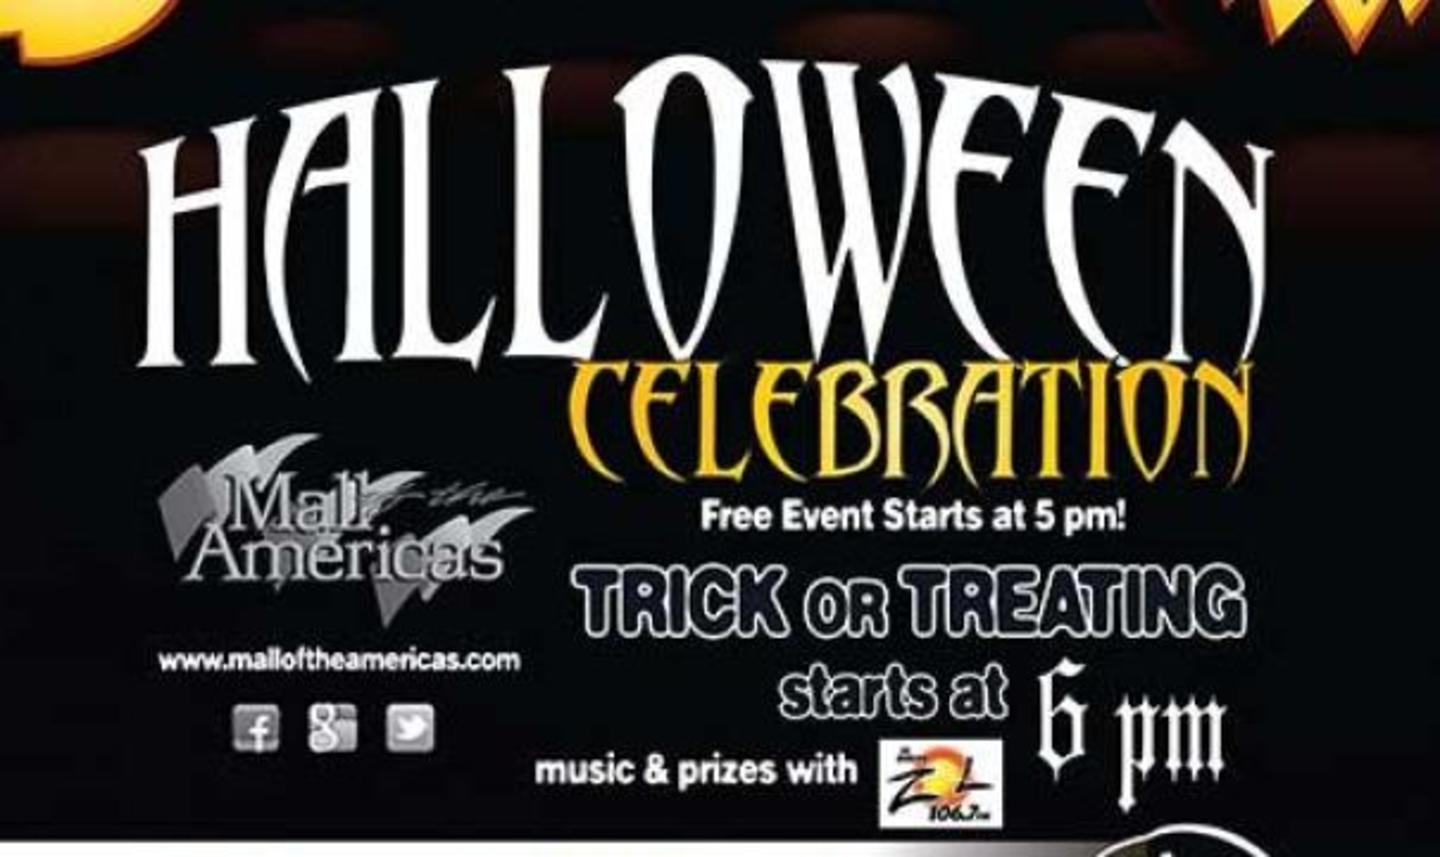 Halloween Celebration at The Mall of the Americas